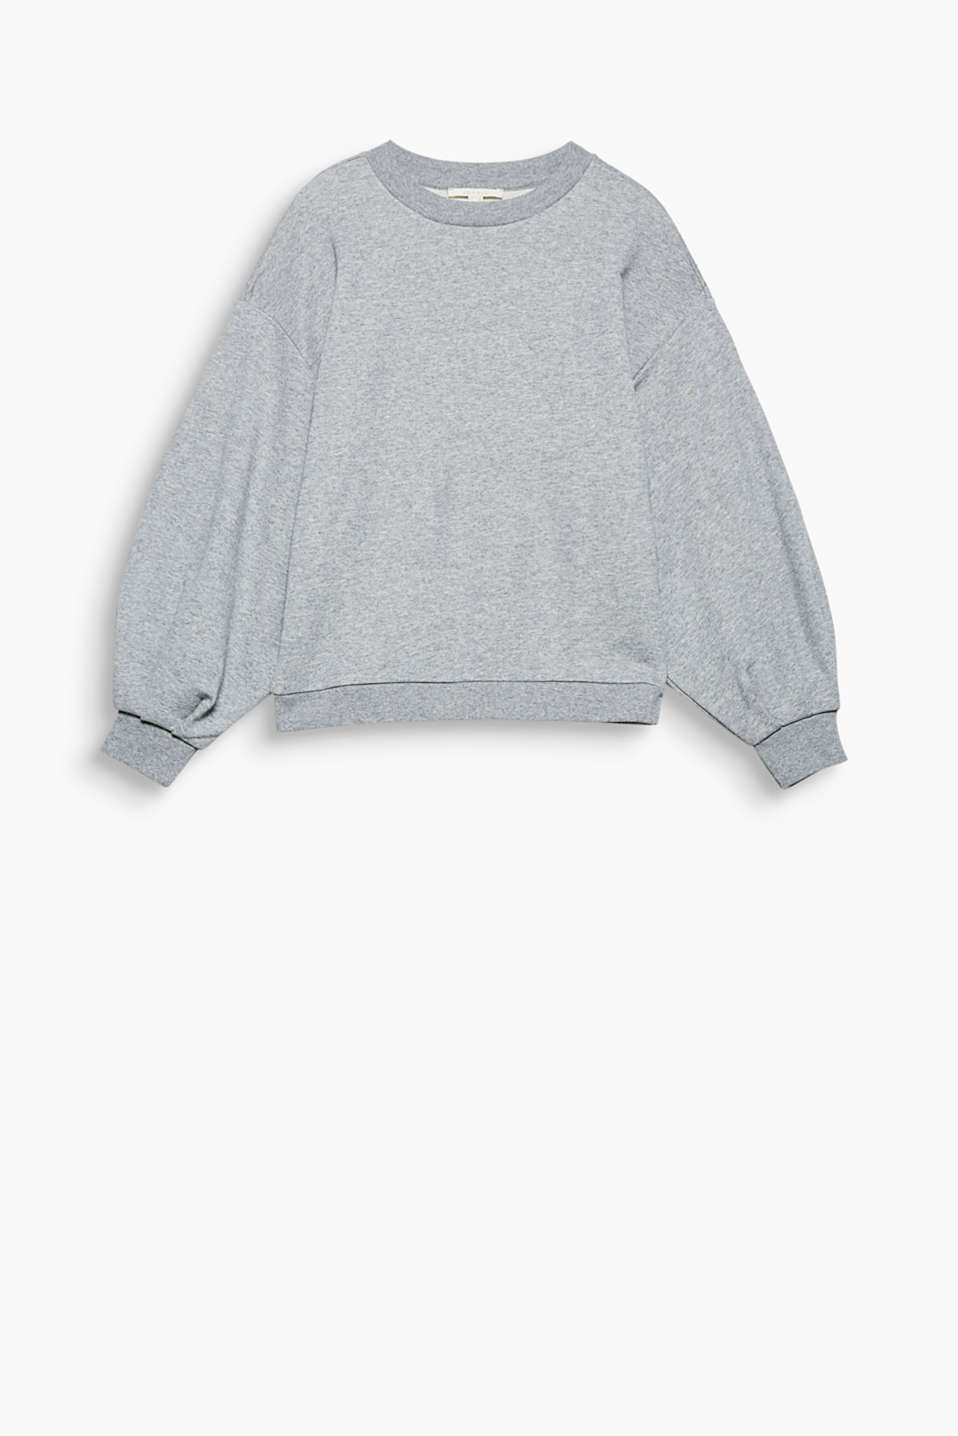 This boxy sweatshirt with extra-wide sleeves is a piece with that certain fashion je ne sais quoi.